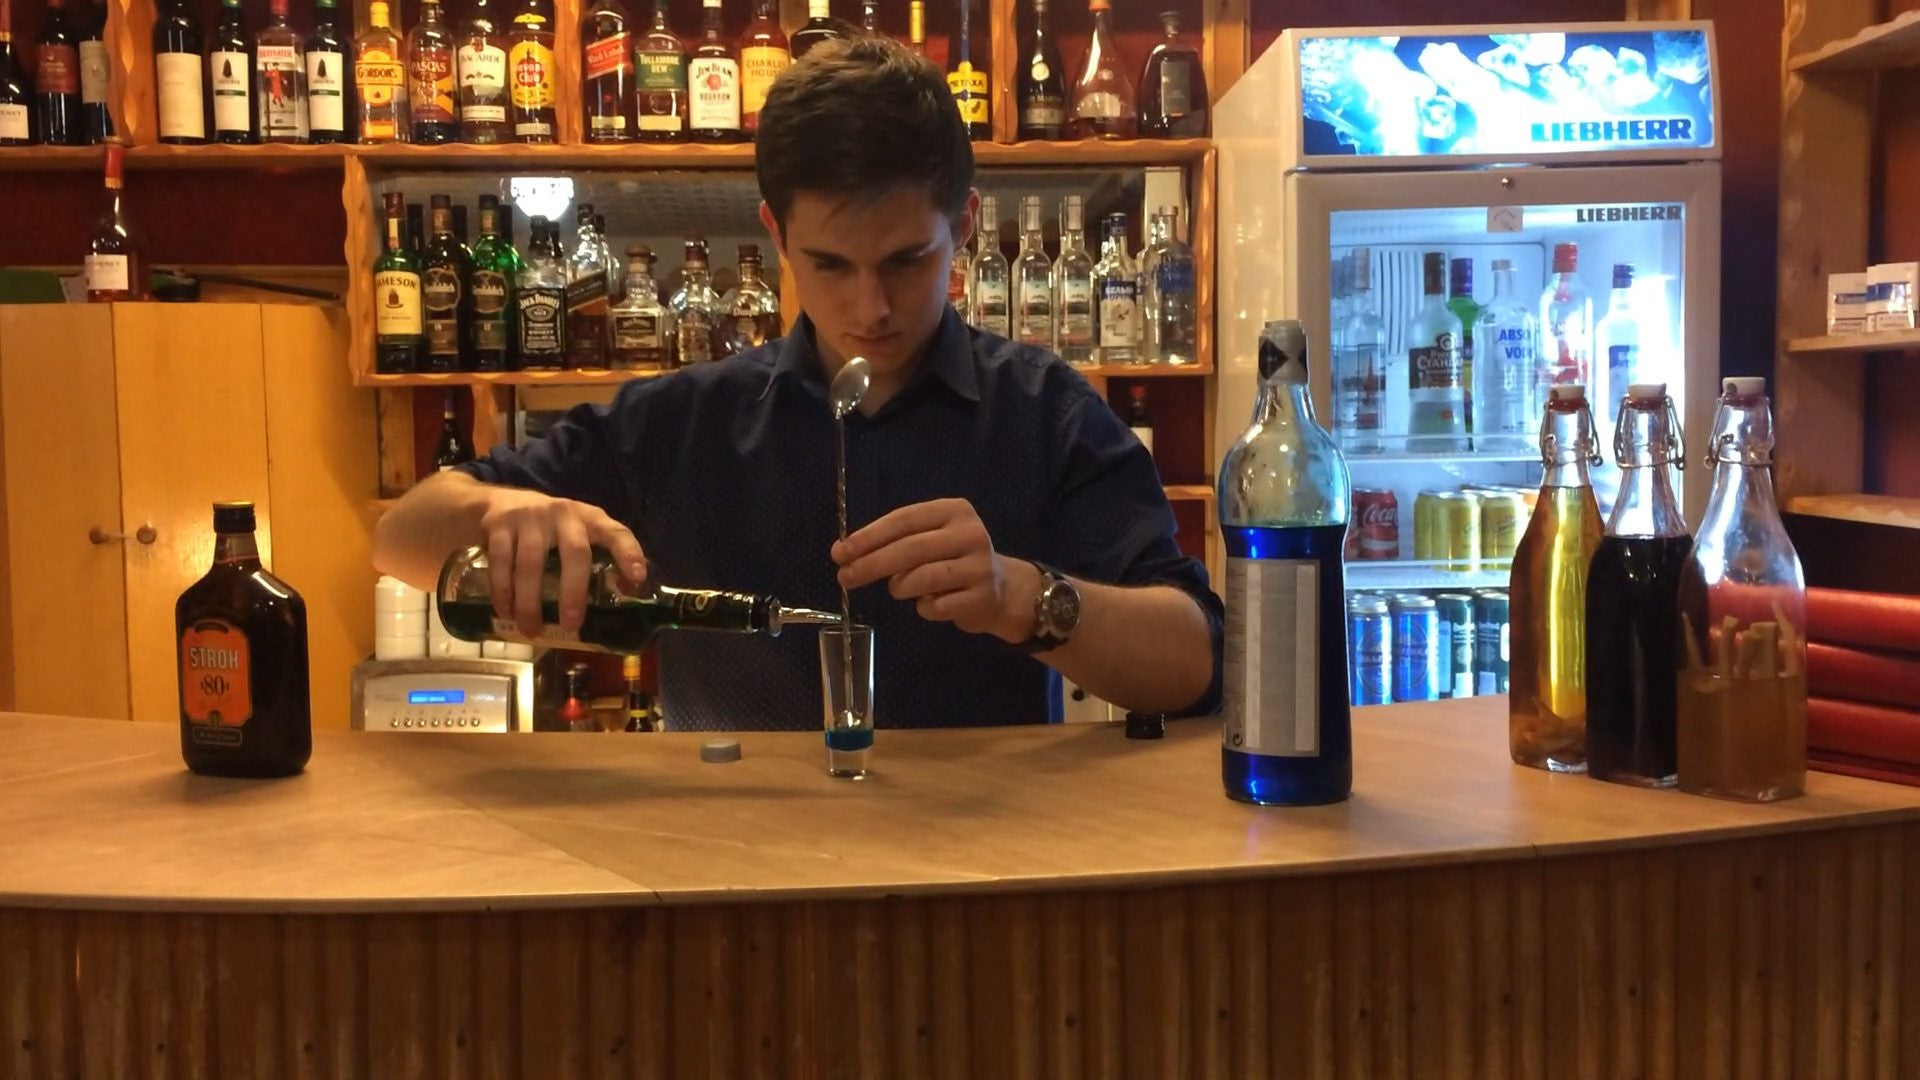 """Tom Cruise,"" the bartender at the Pyramiden bar."